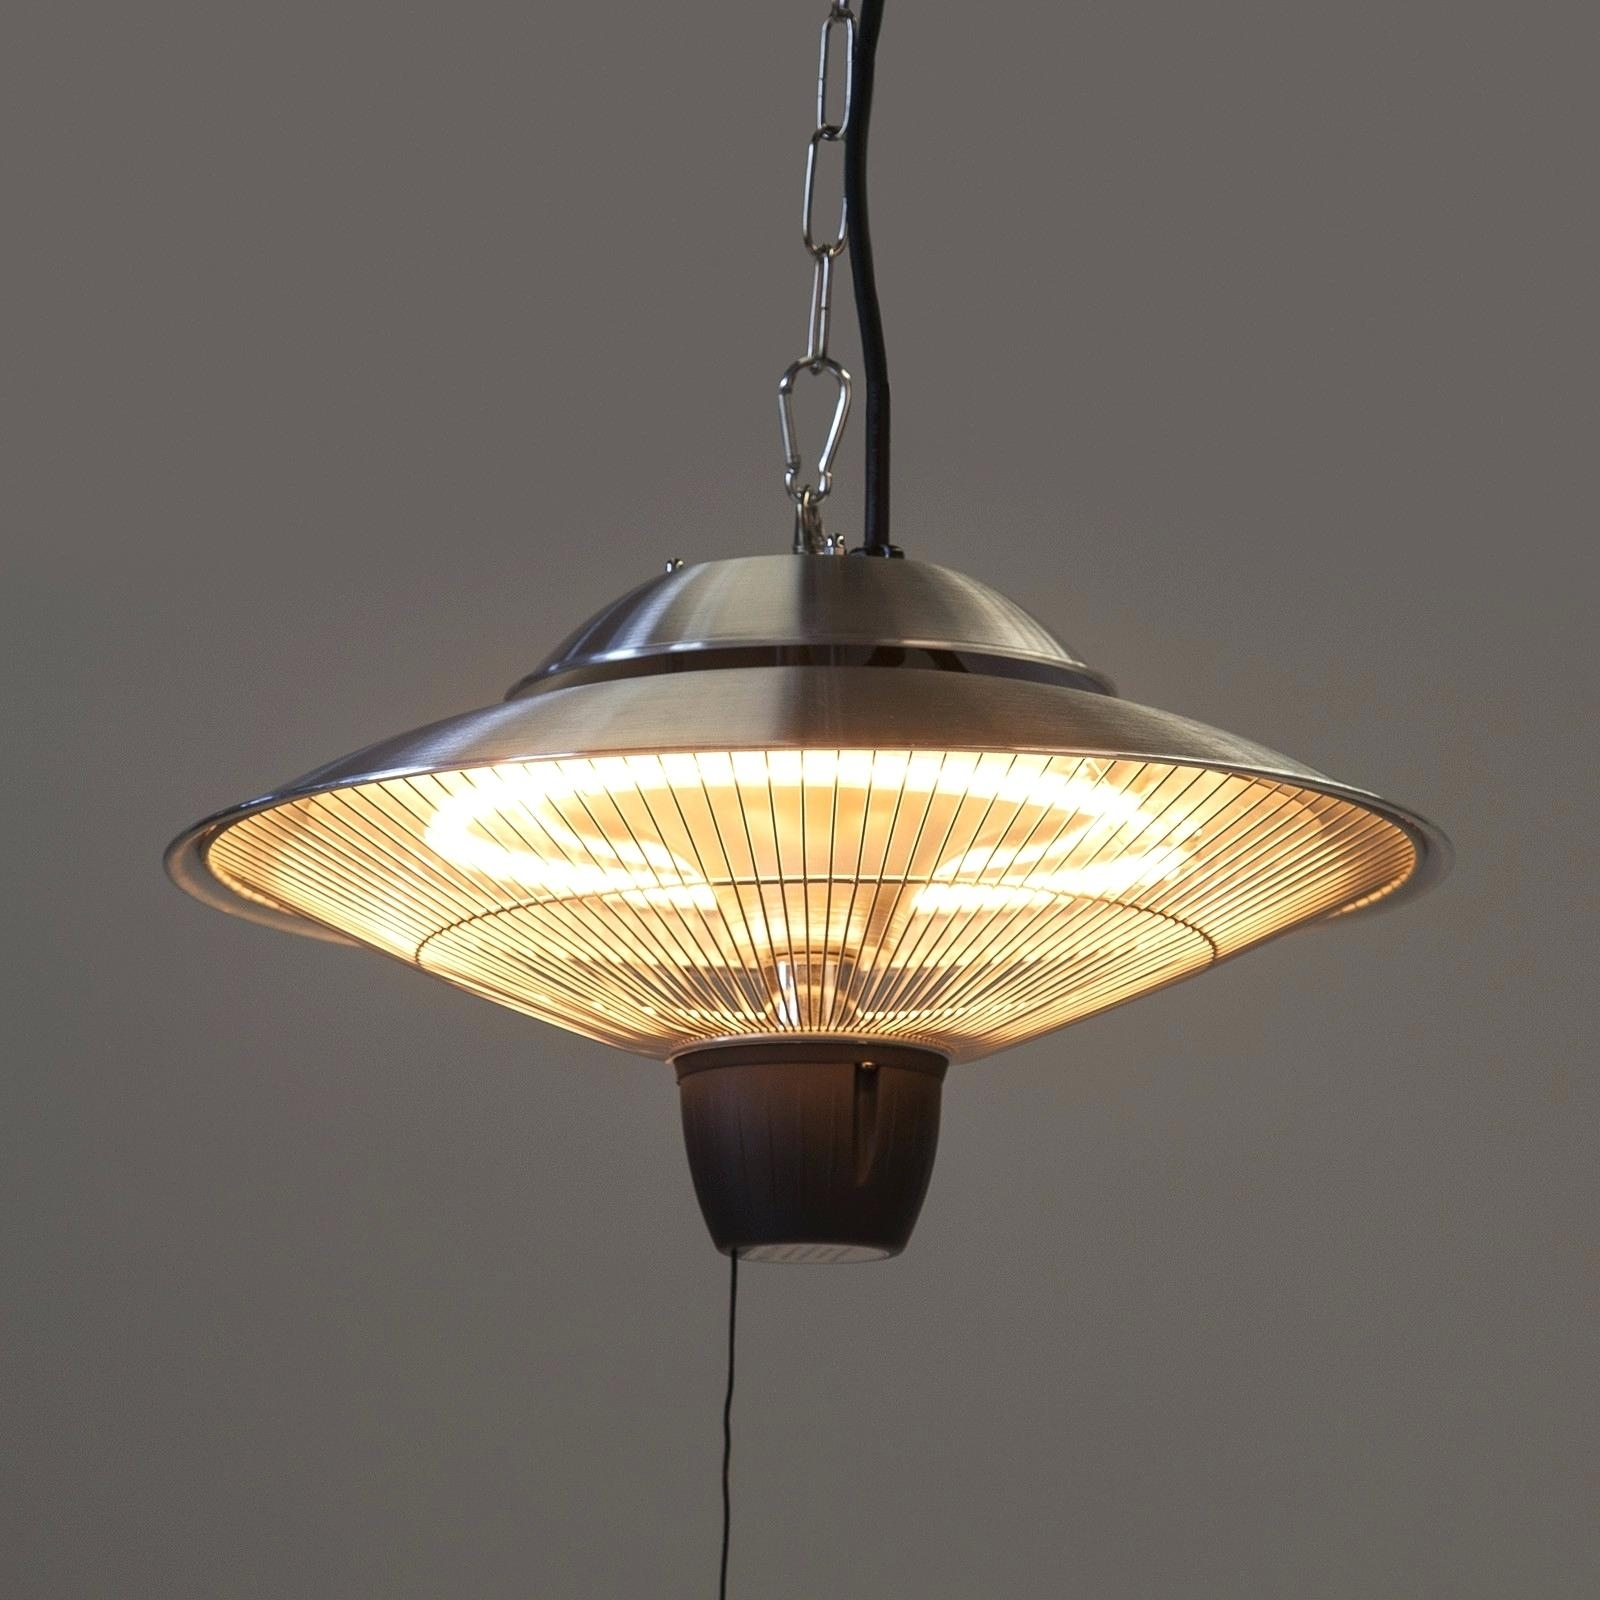 Lamps : Electric Heat Lamps Outdoor Patio Ideas Heating Hammer Tone Throughout Outdoor Hanging Heat Lamps (#6 of 15)